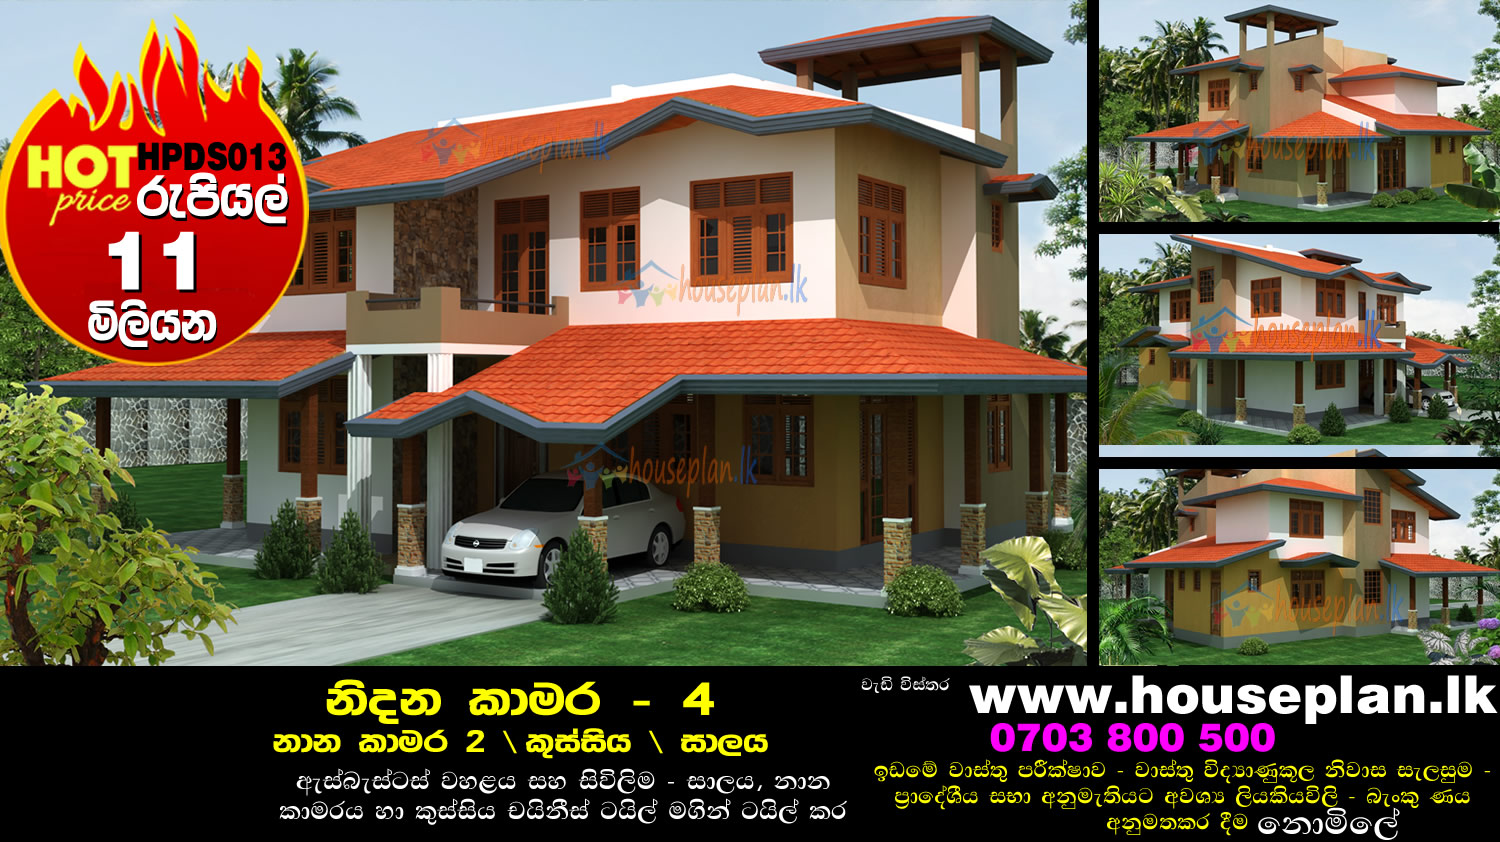 House plan sri lanka house plan 2017 for Home design in sri lanka